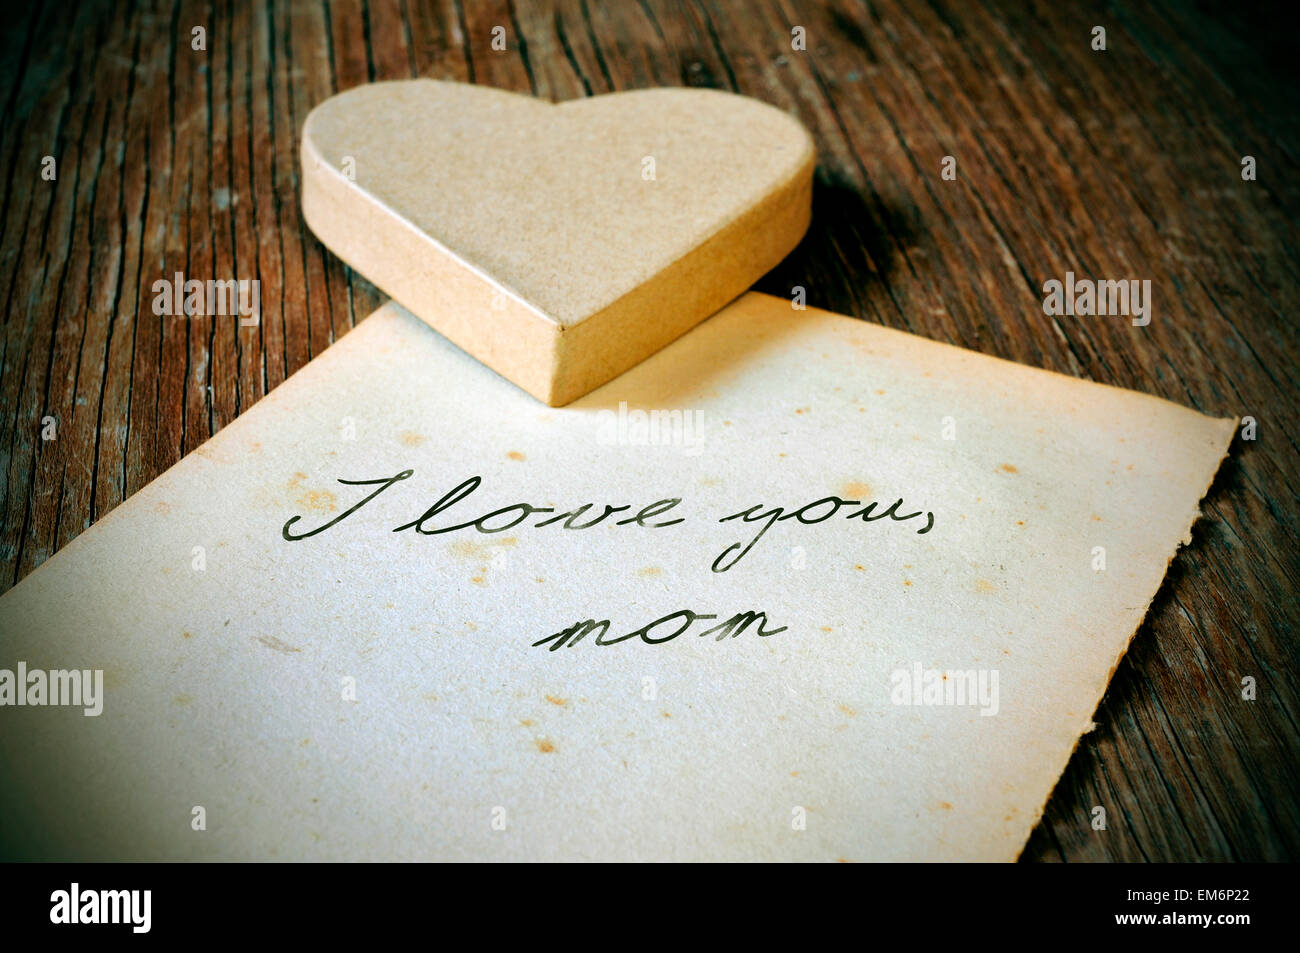 a cardboard heart and and old sheet of paper with the text I love you mom written in it on a rustic wooden table, - Stock Image